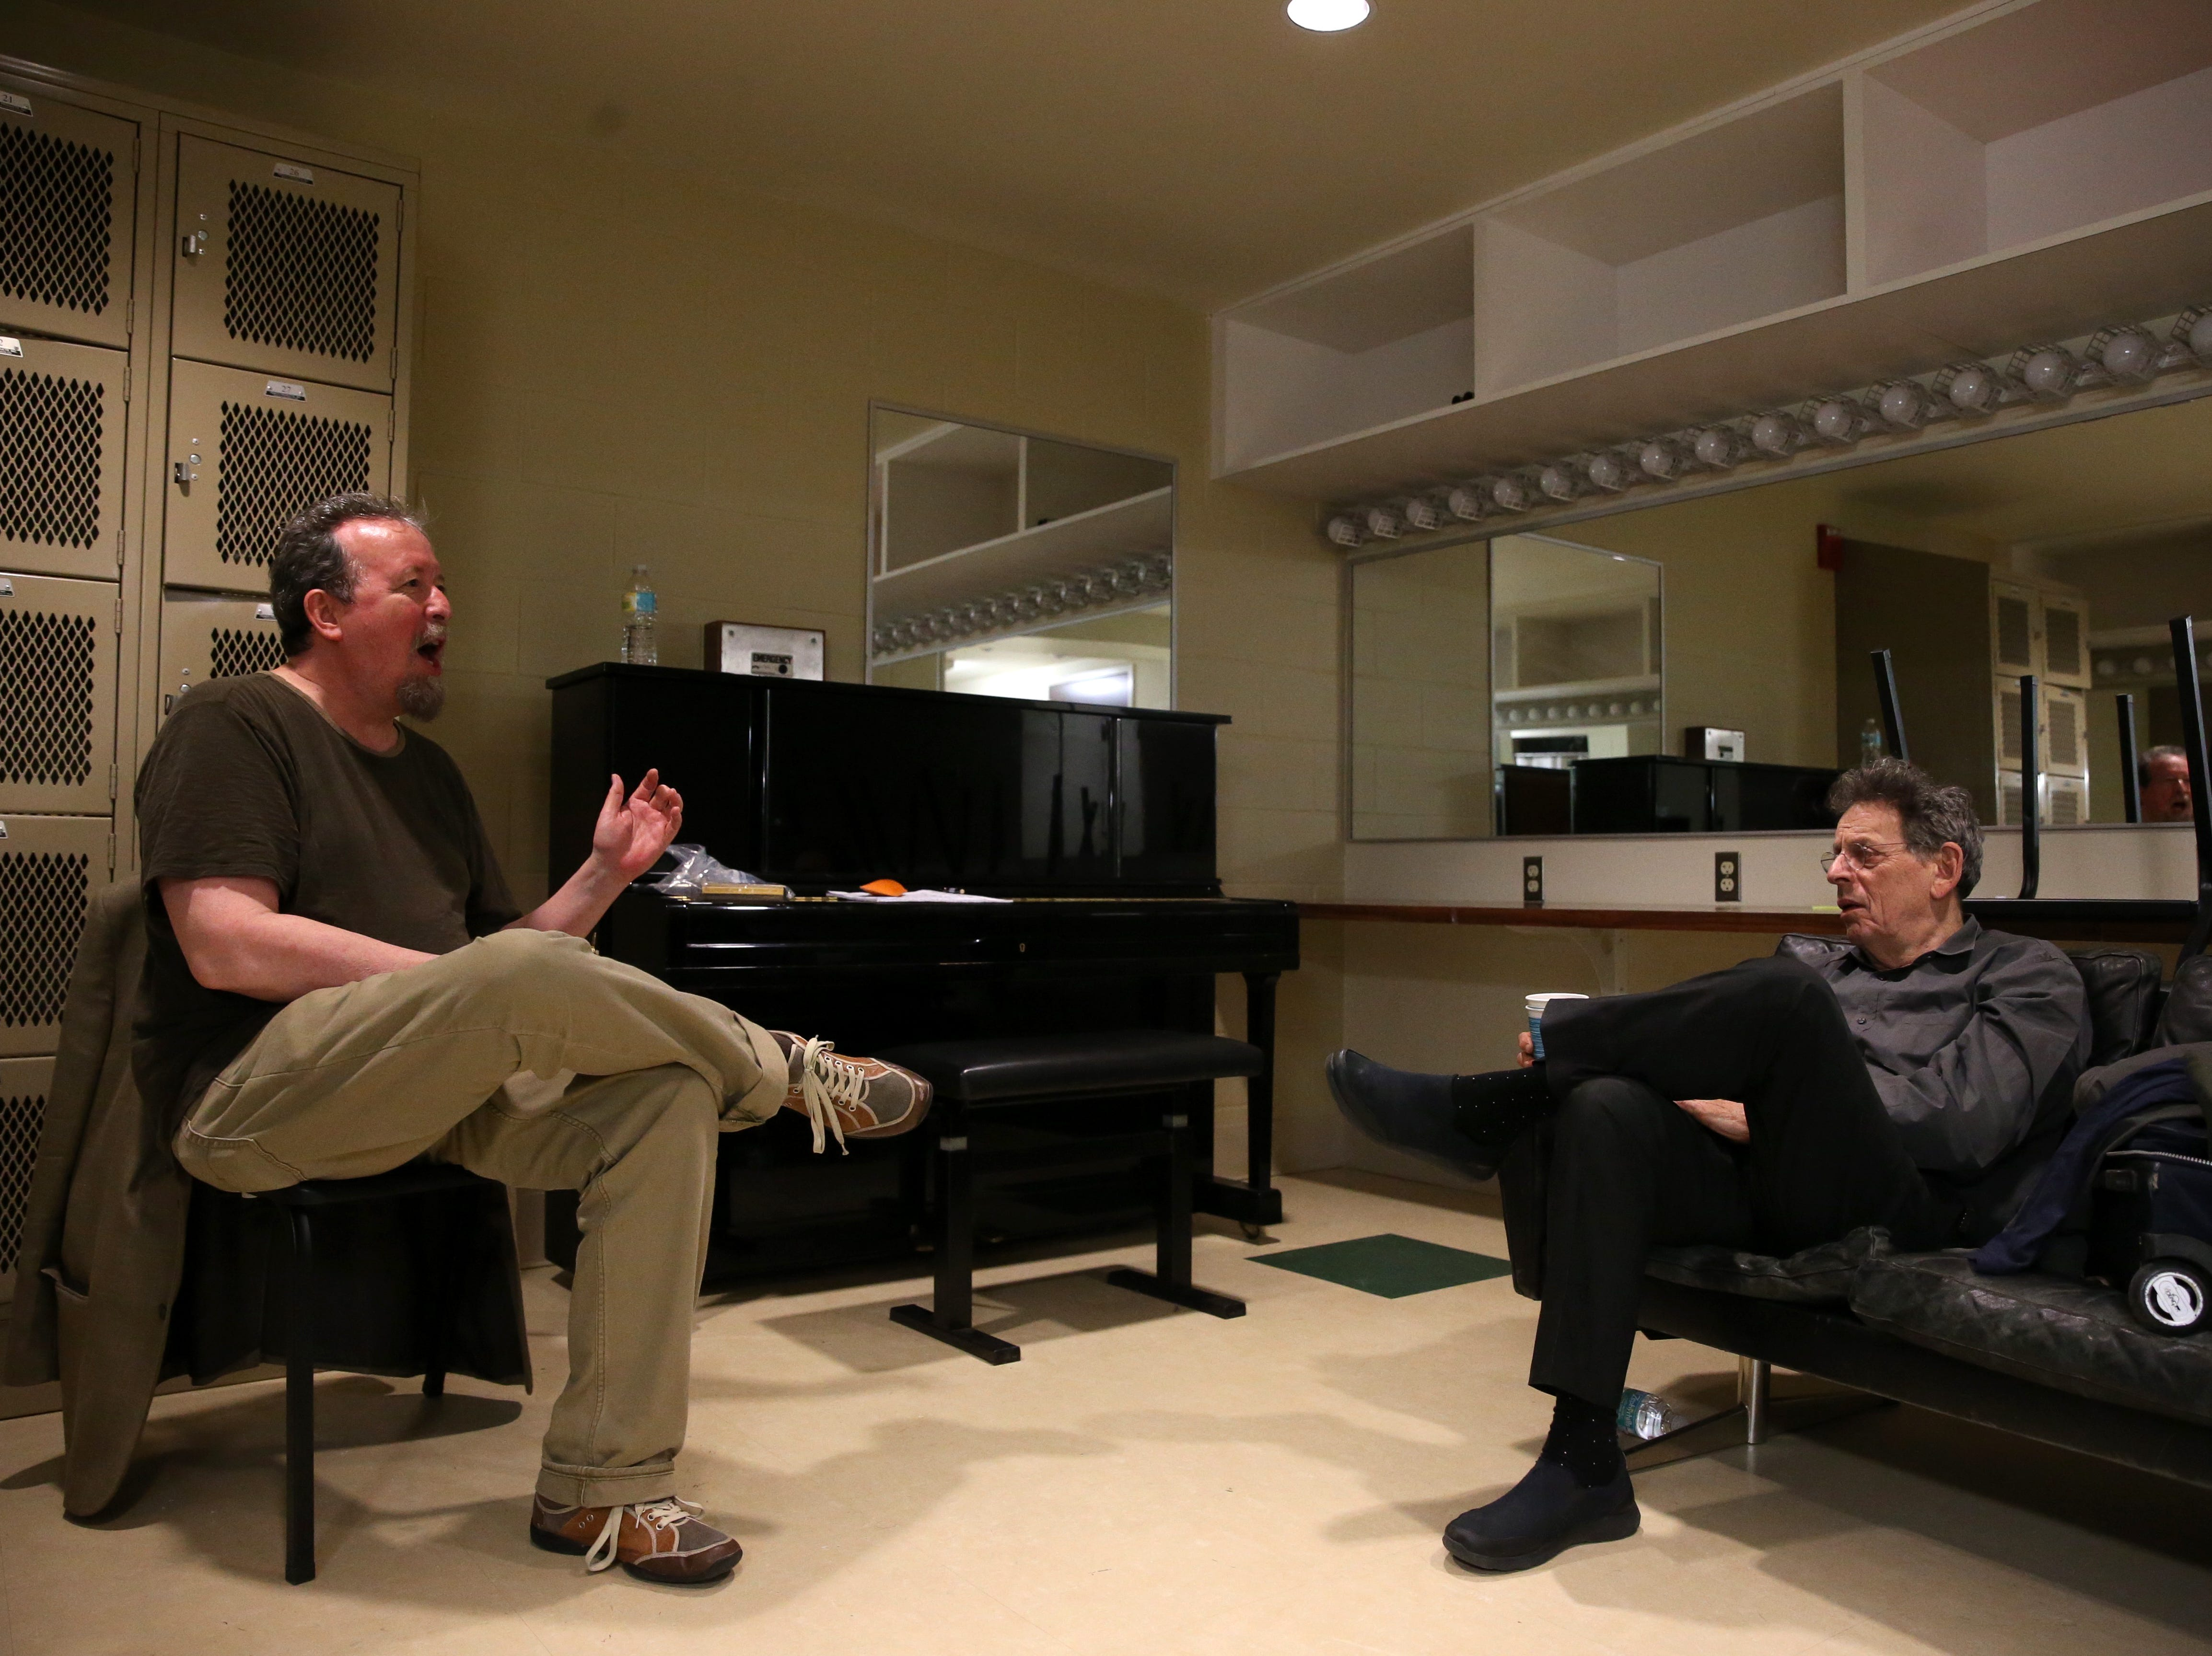 Democrat entertainment writer Mark Hinson chats with world-famous composer Philip Glass backstage before their Golden Tribe Lecture Series event at the Ruby Diamond Concert Hall on Tuesday, March 28, 2017.